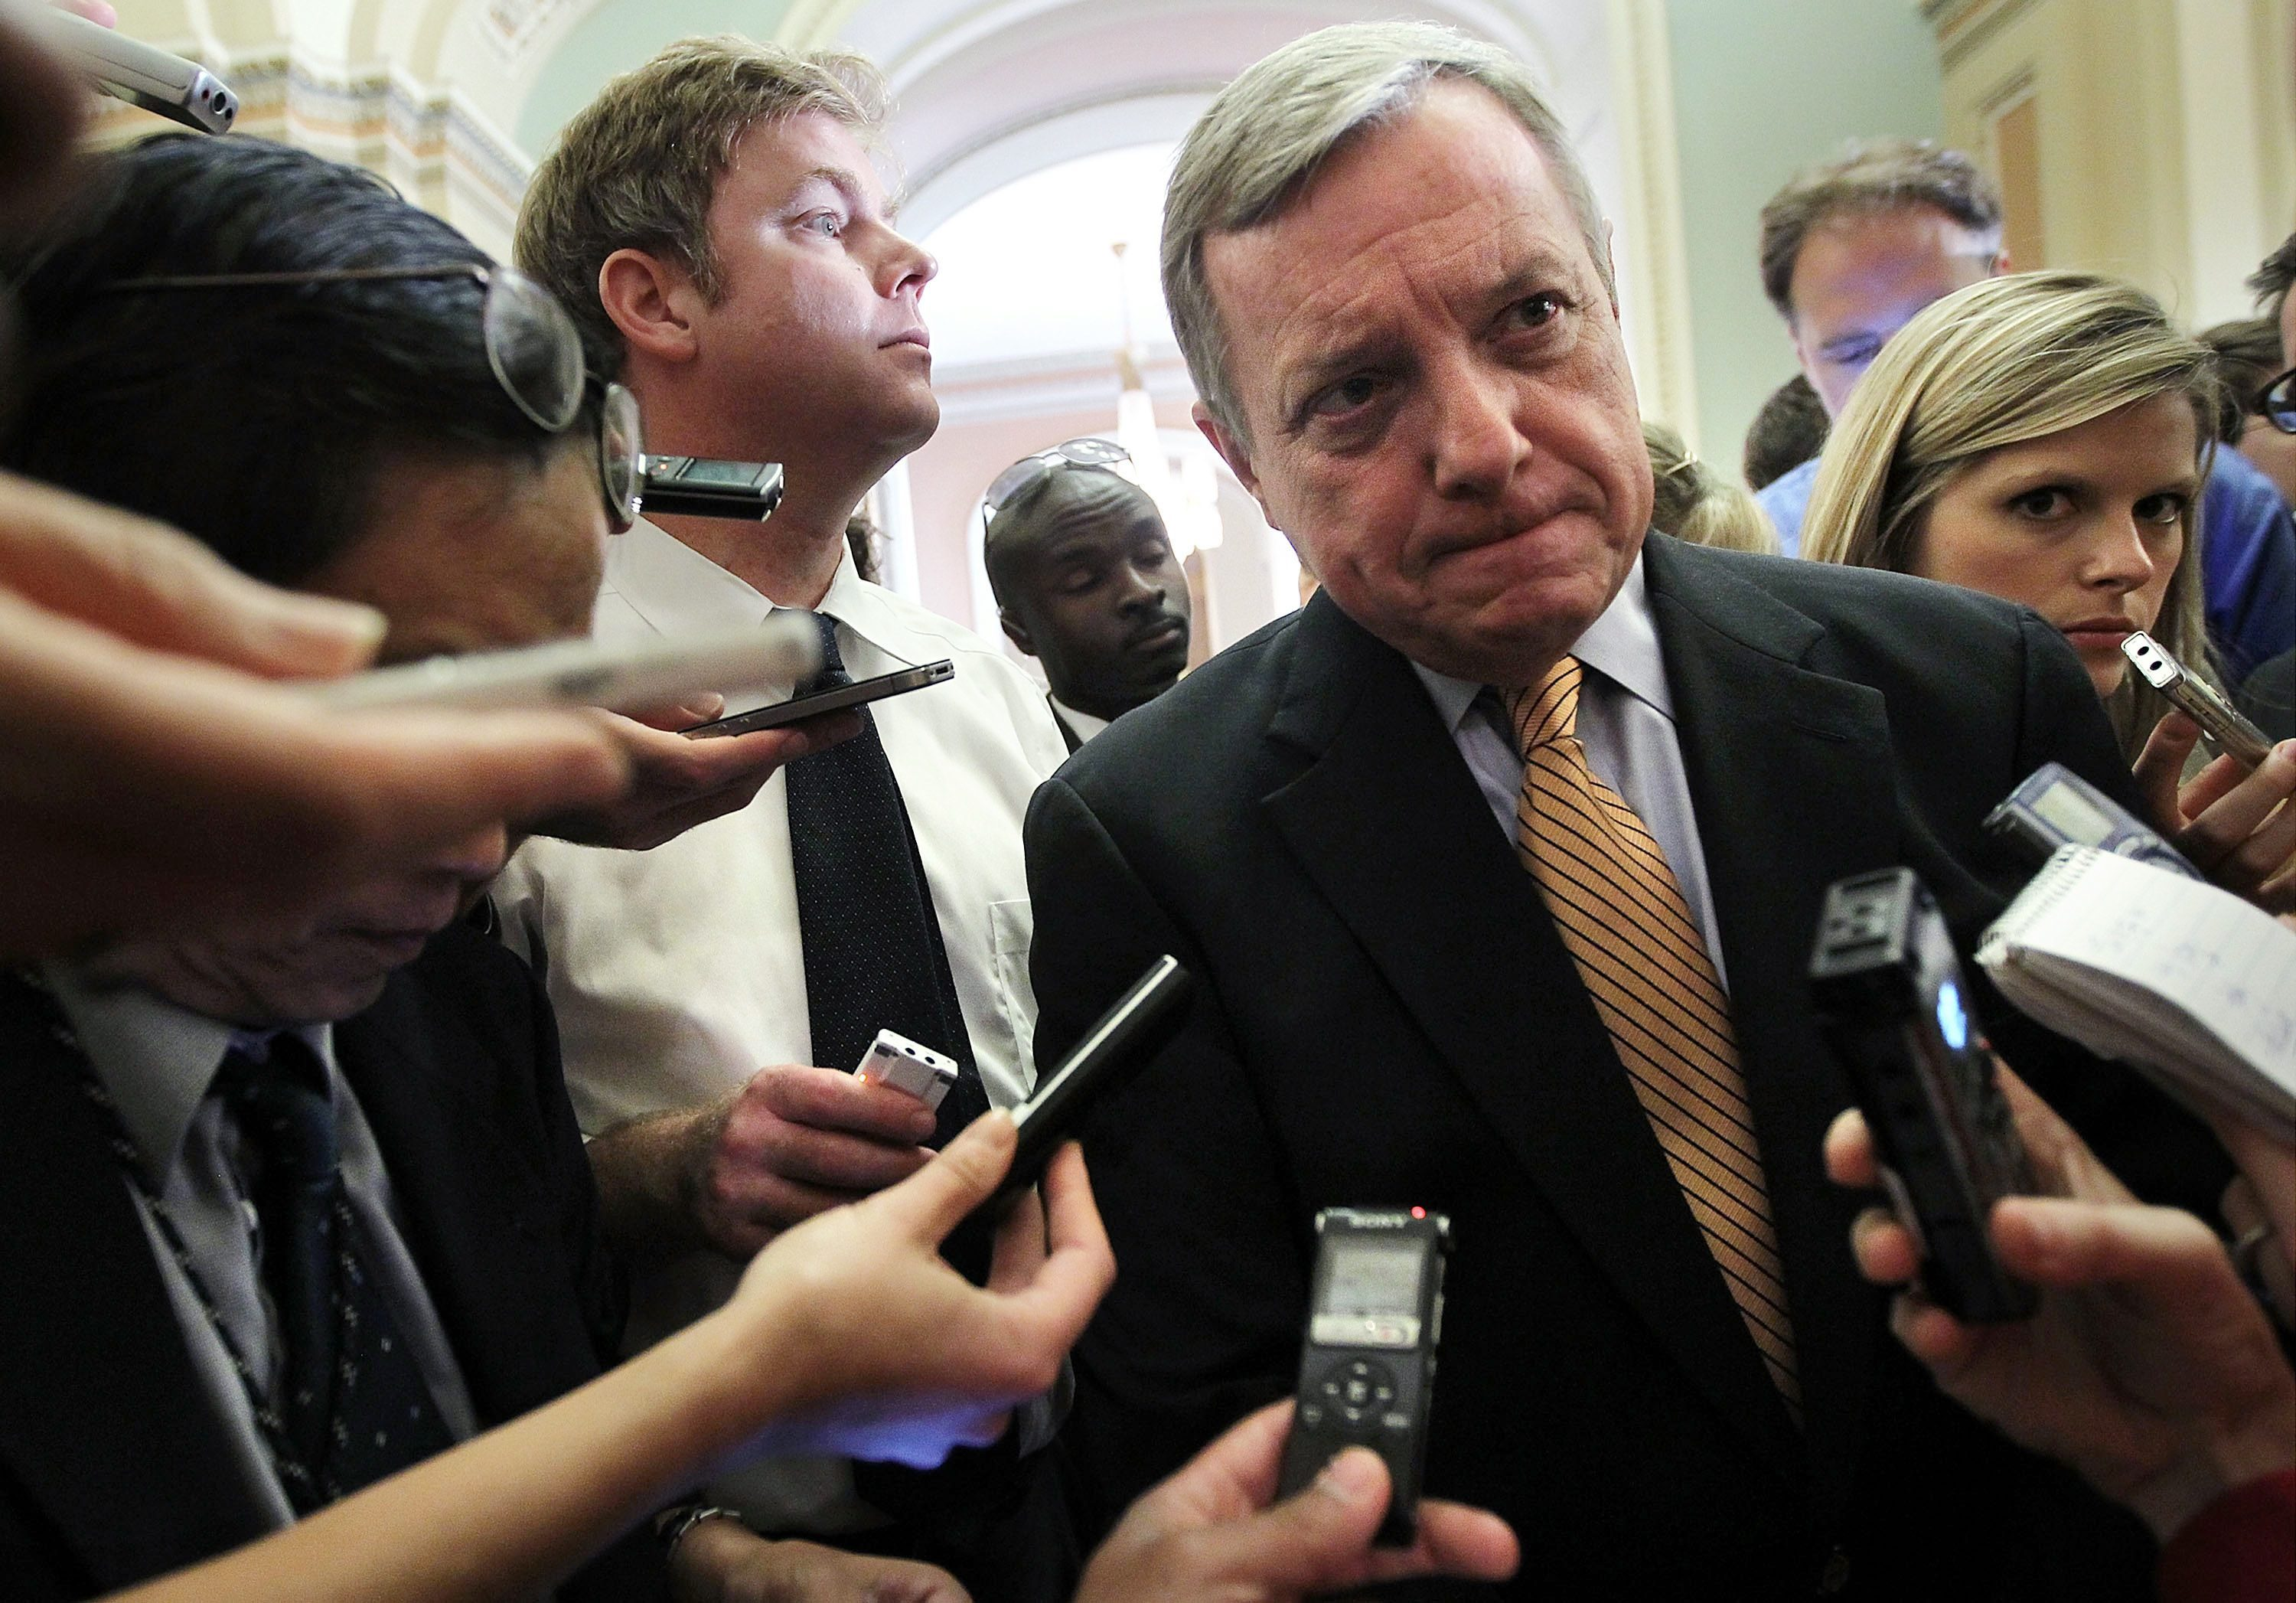 """[If] Main Street retailers collect sales taxes on behalf of consumers, why shouldn't online retailers do the same?"" asks Sen. Dick Durbin, an Illinois Democrat."